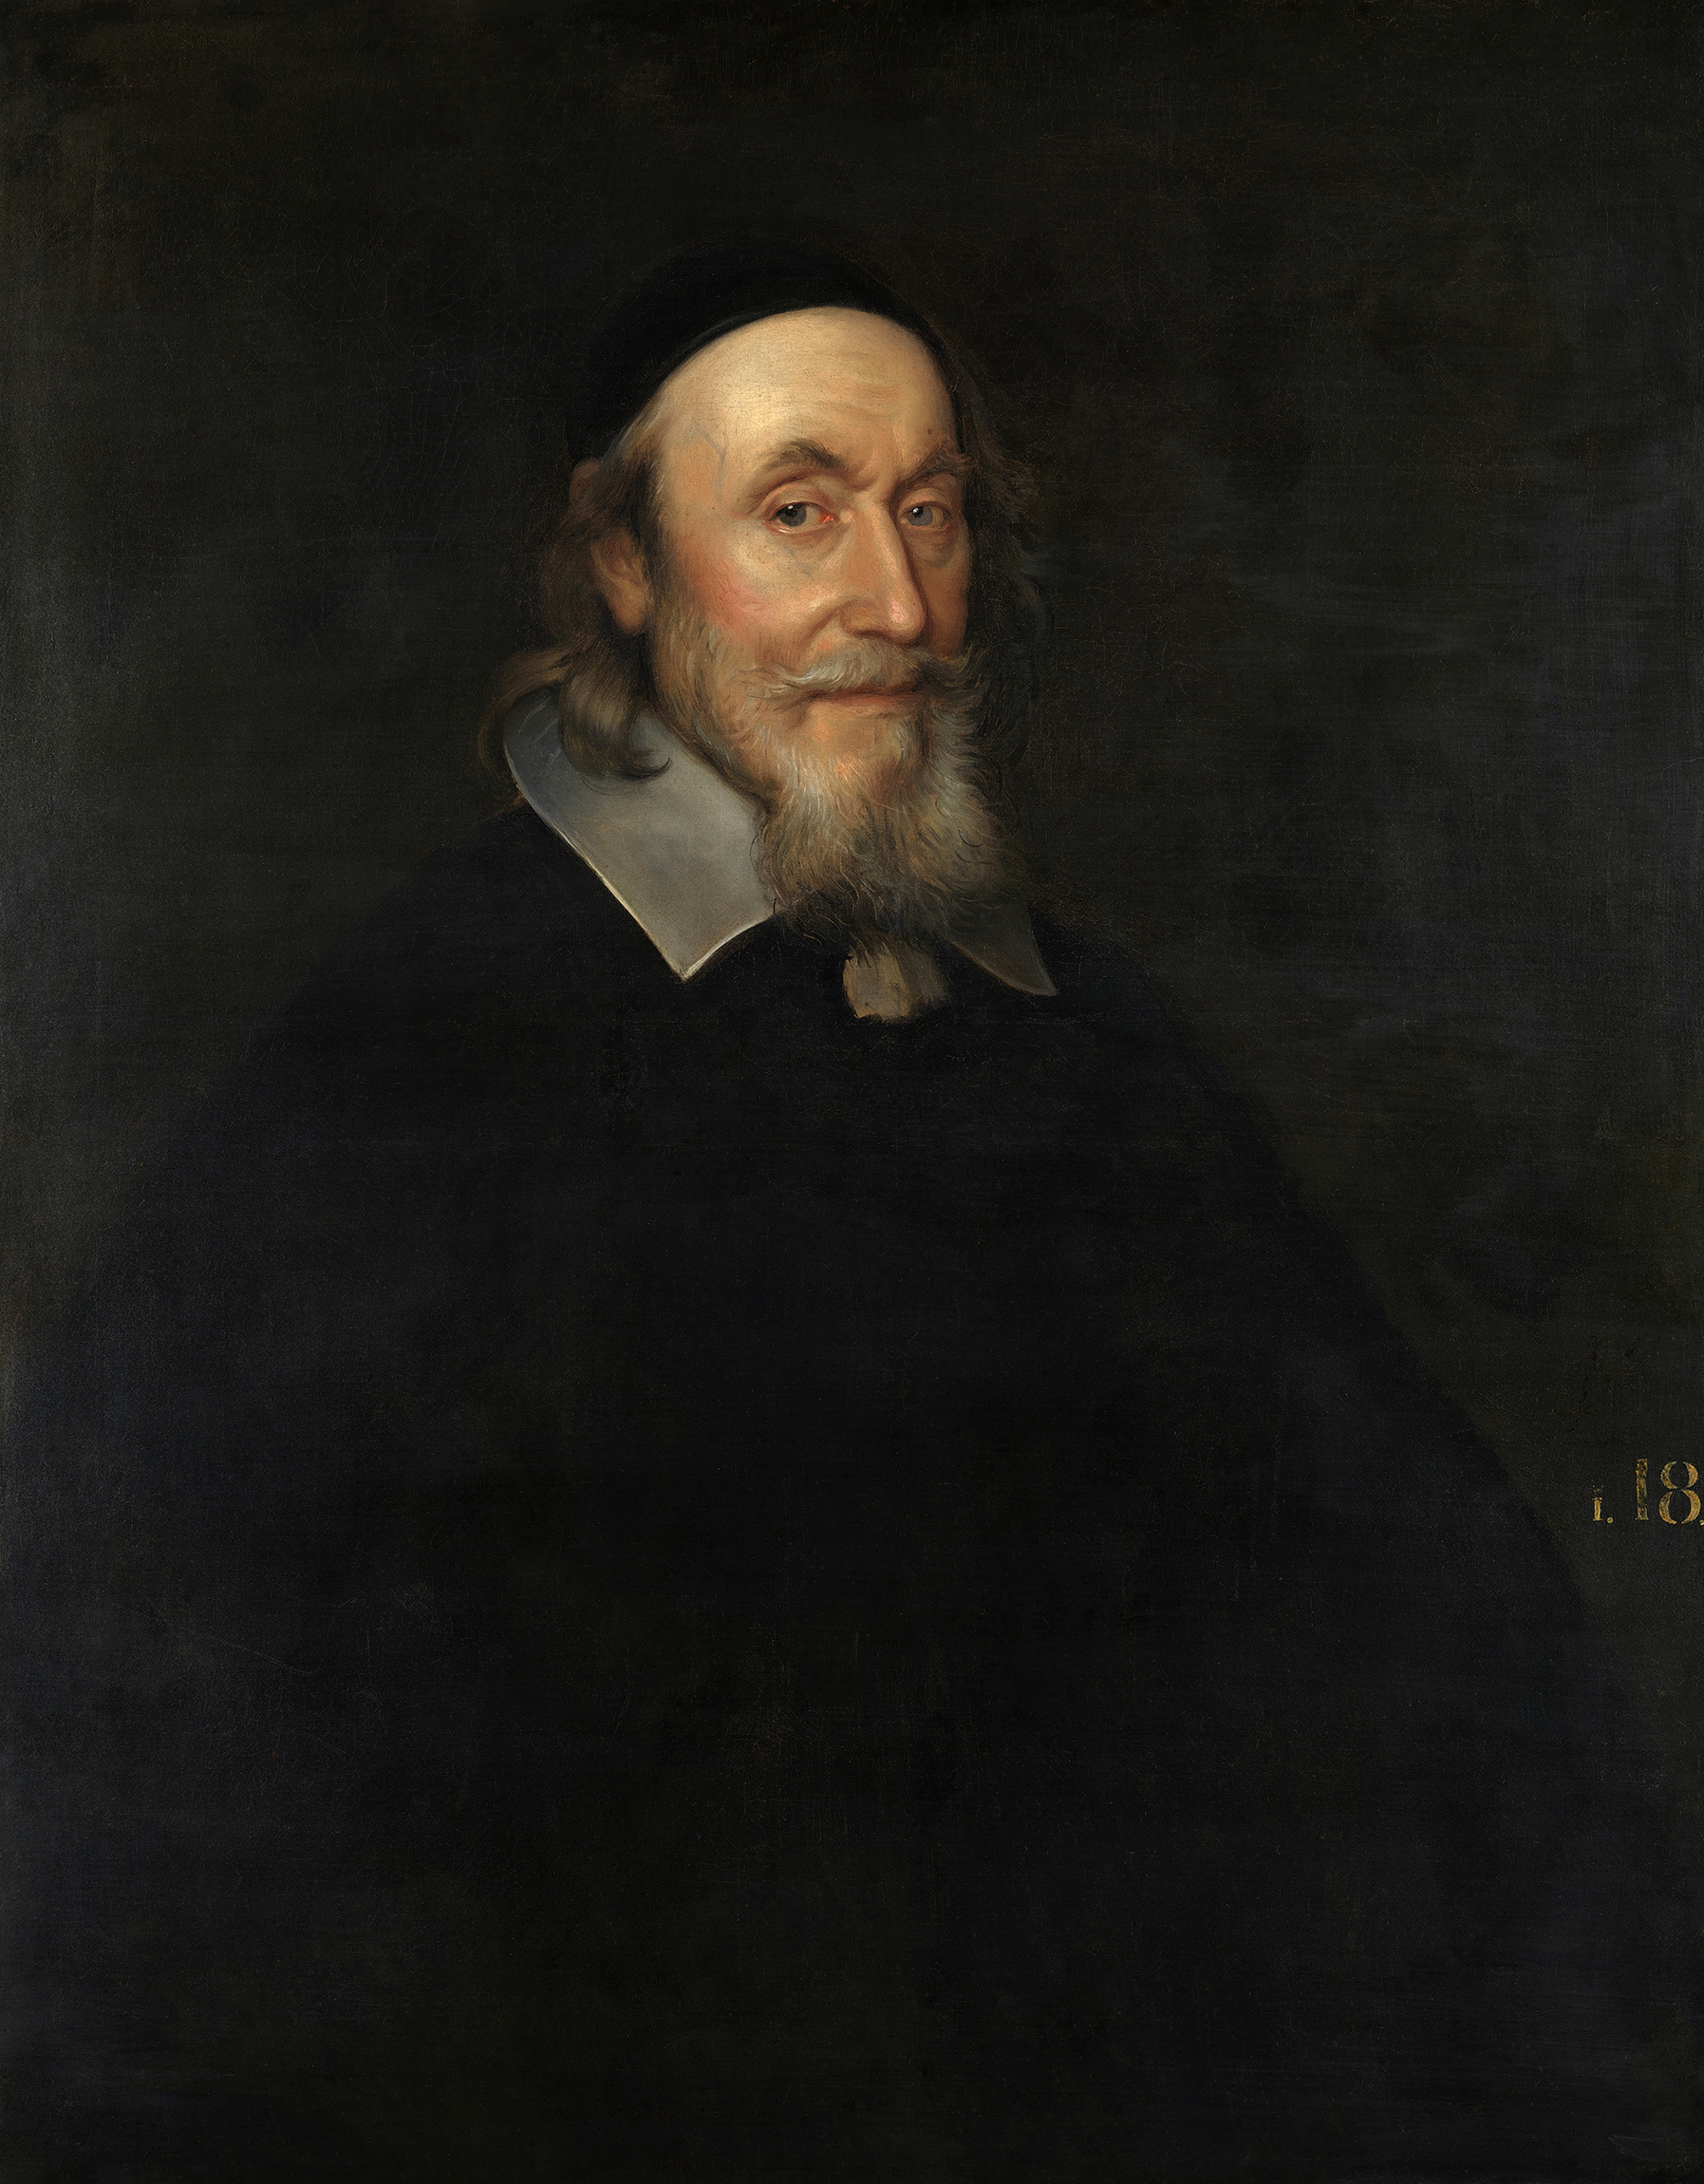 Portrait of Axel Oxenstierna (1583-1654), Count of Södermöre (1645), Lord High Chancellor of Sweden (Swedish: Rikskansler) from 1612 to 1654, de facto Regent of Sweden (1632-1644), 1651 | Portraits of Kings